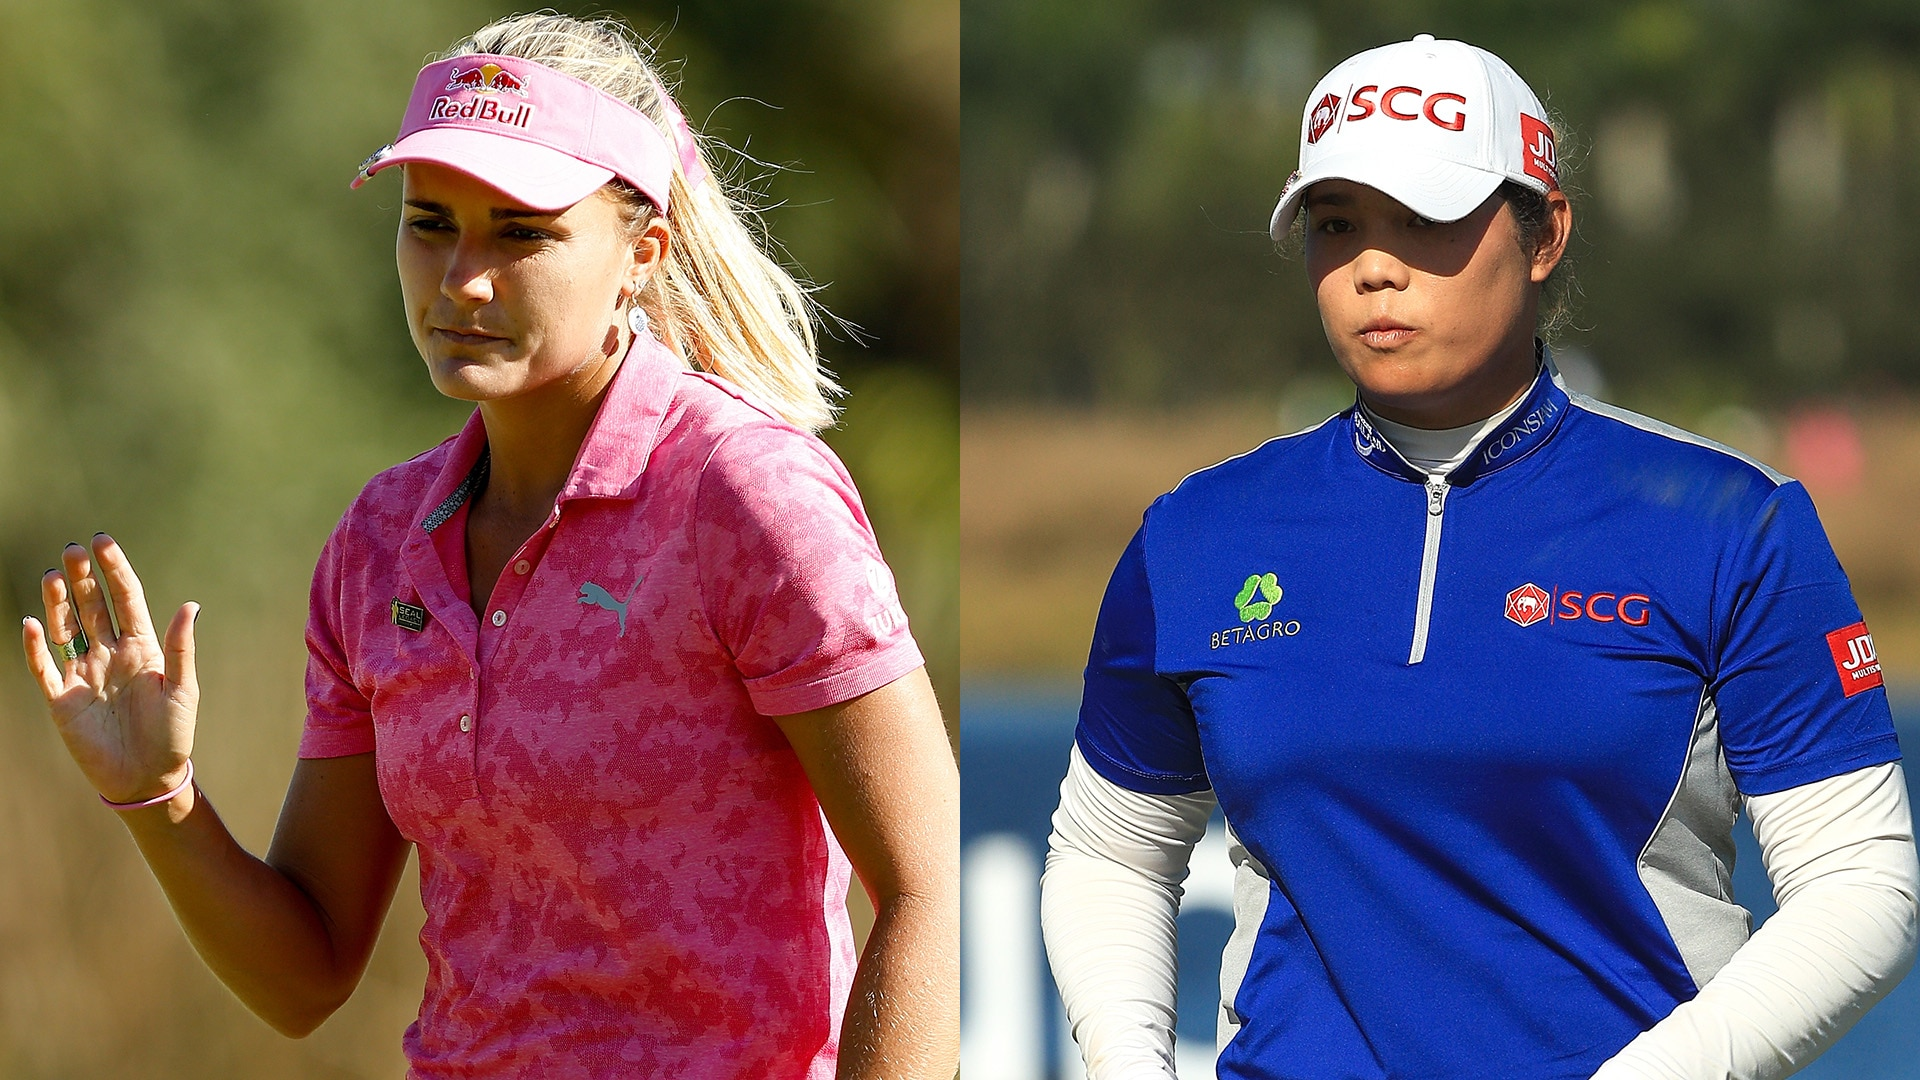 Lexi Thompson and Ariya Jutanugarn at the 2018 CME Group Tour Championship